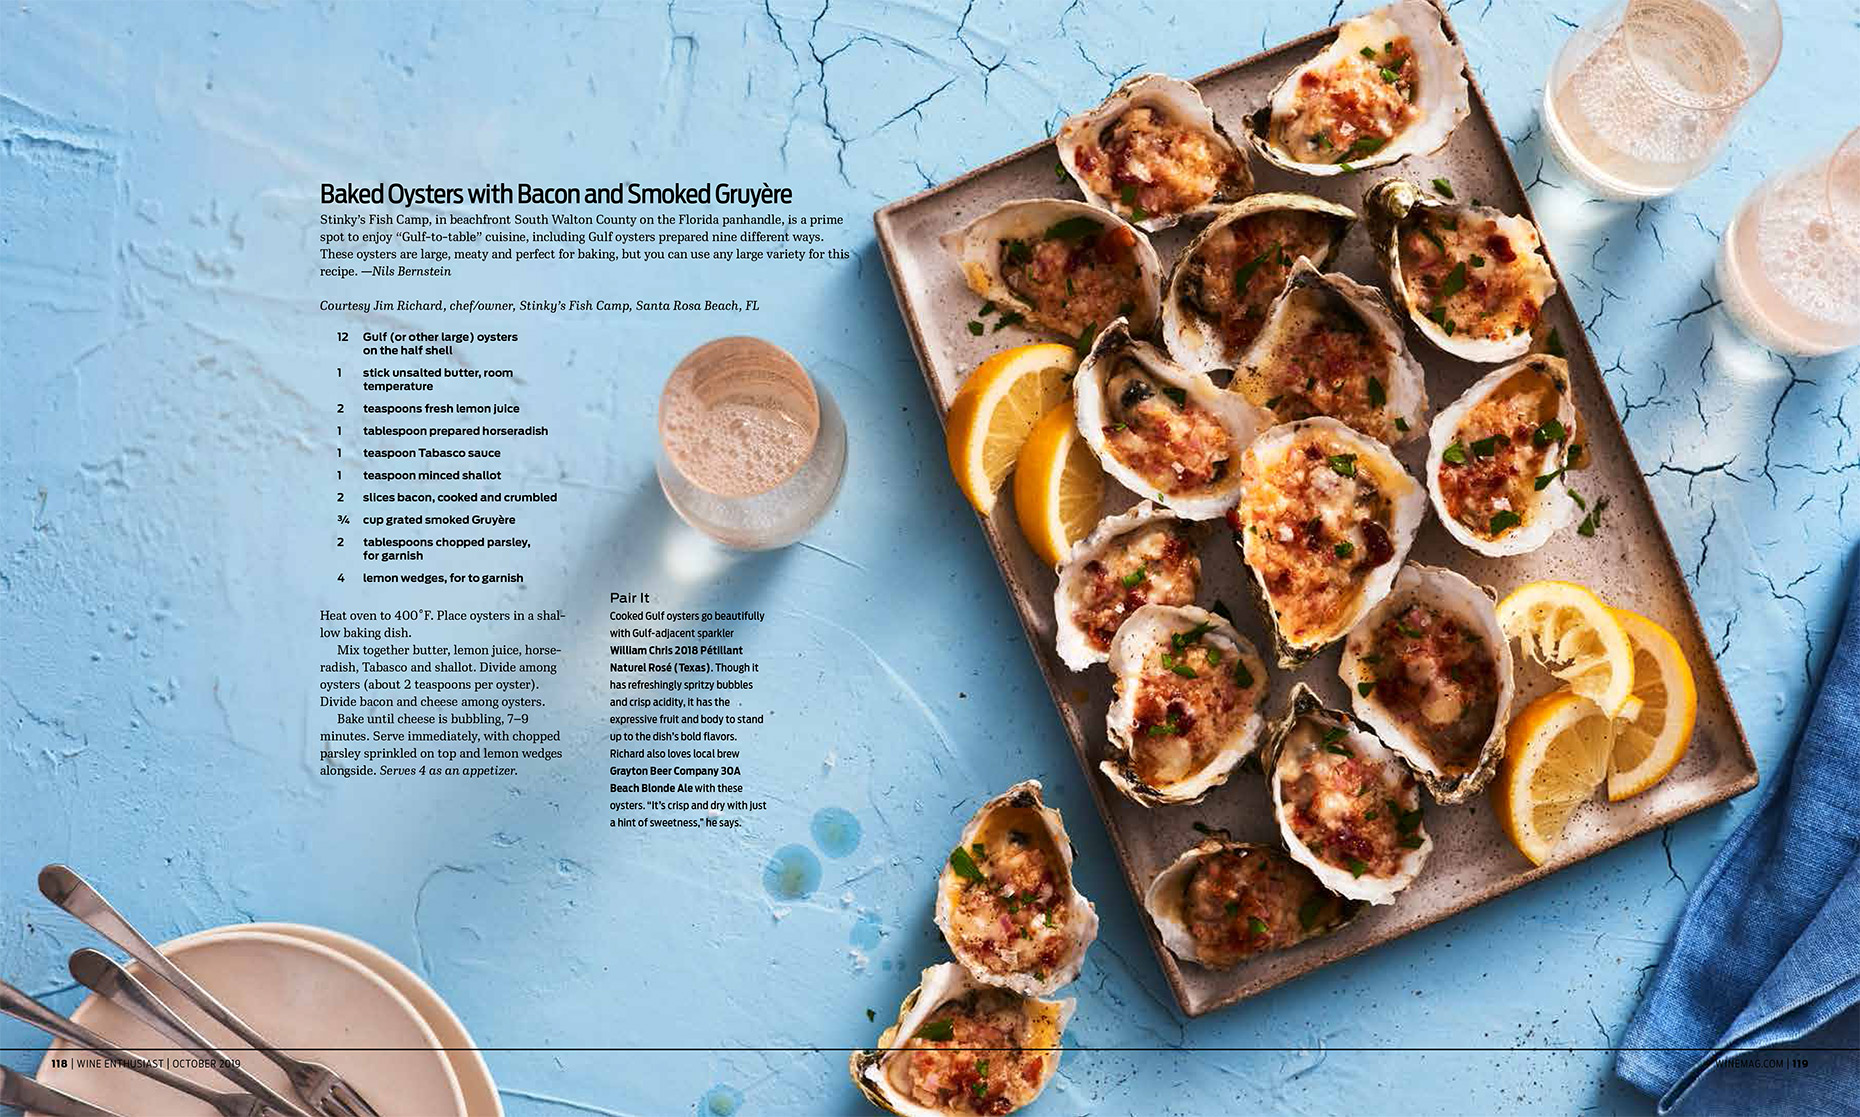 Wine Enthusiast Sea Fare Article about baked oysters, Food Styling by Takako Kuniyuki New York